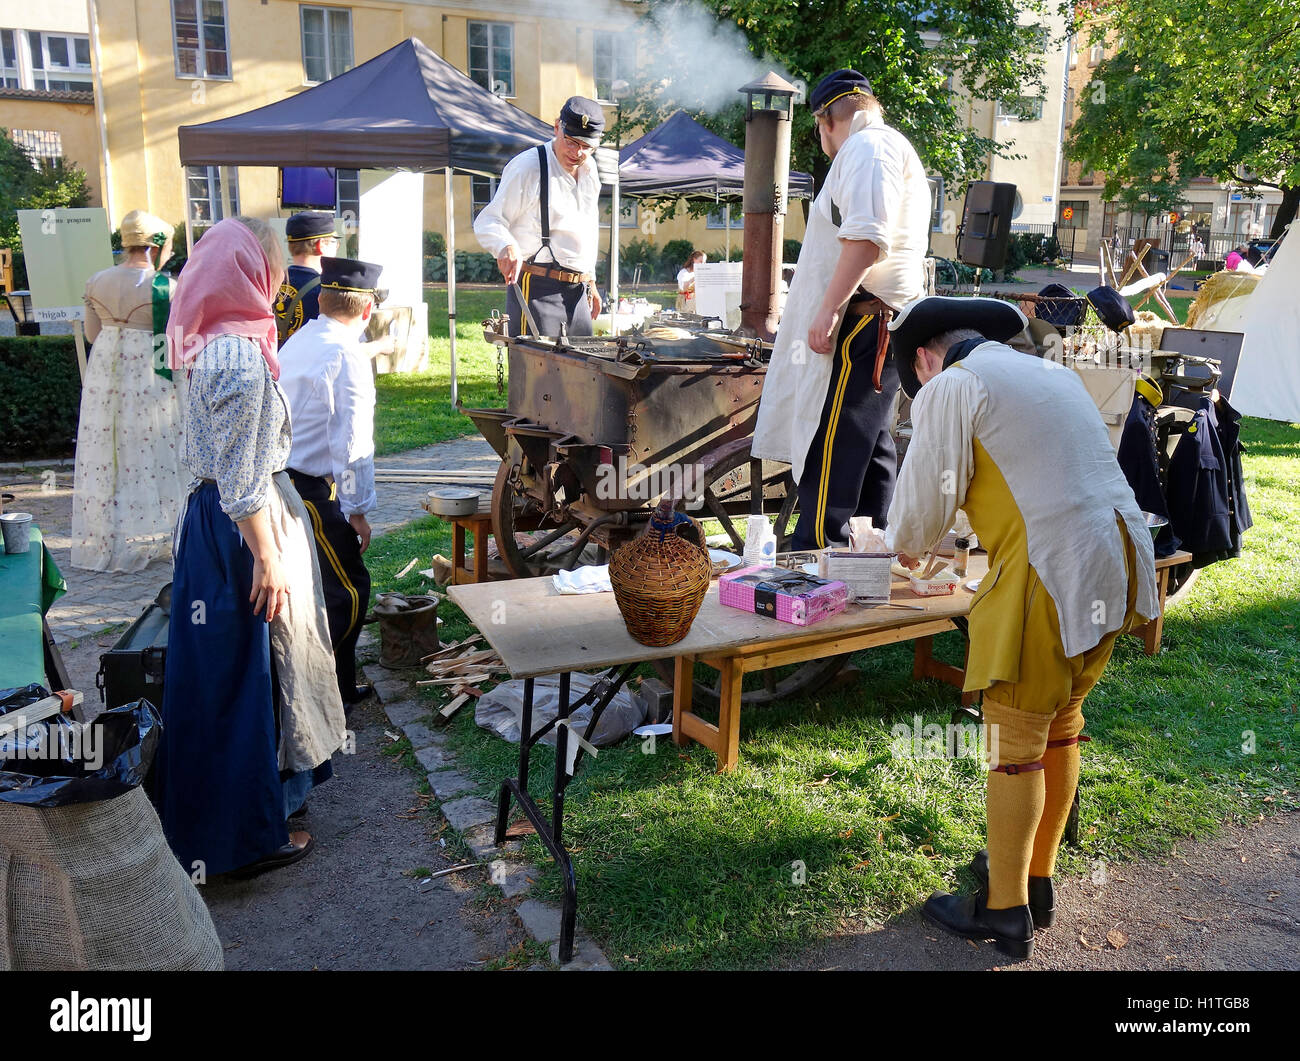 Swedish Caroleans (17th century) re-enactment scene. Military men prepare and serve food on a wood burning stove - Stock Image